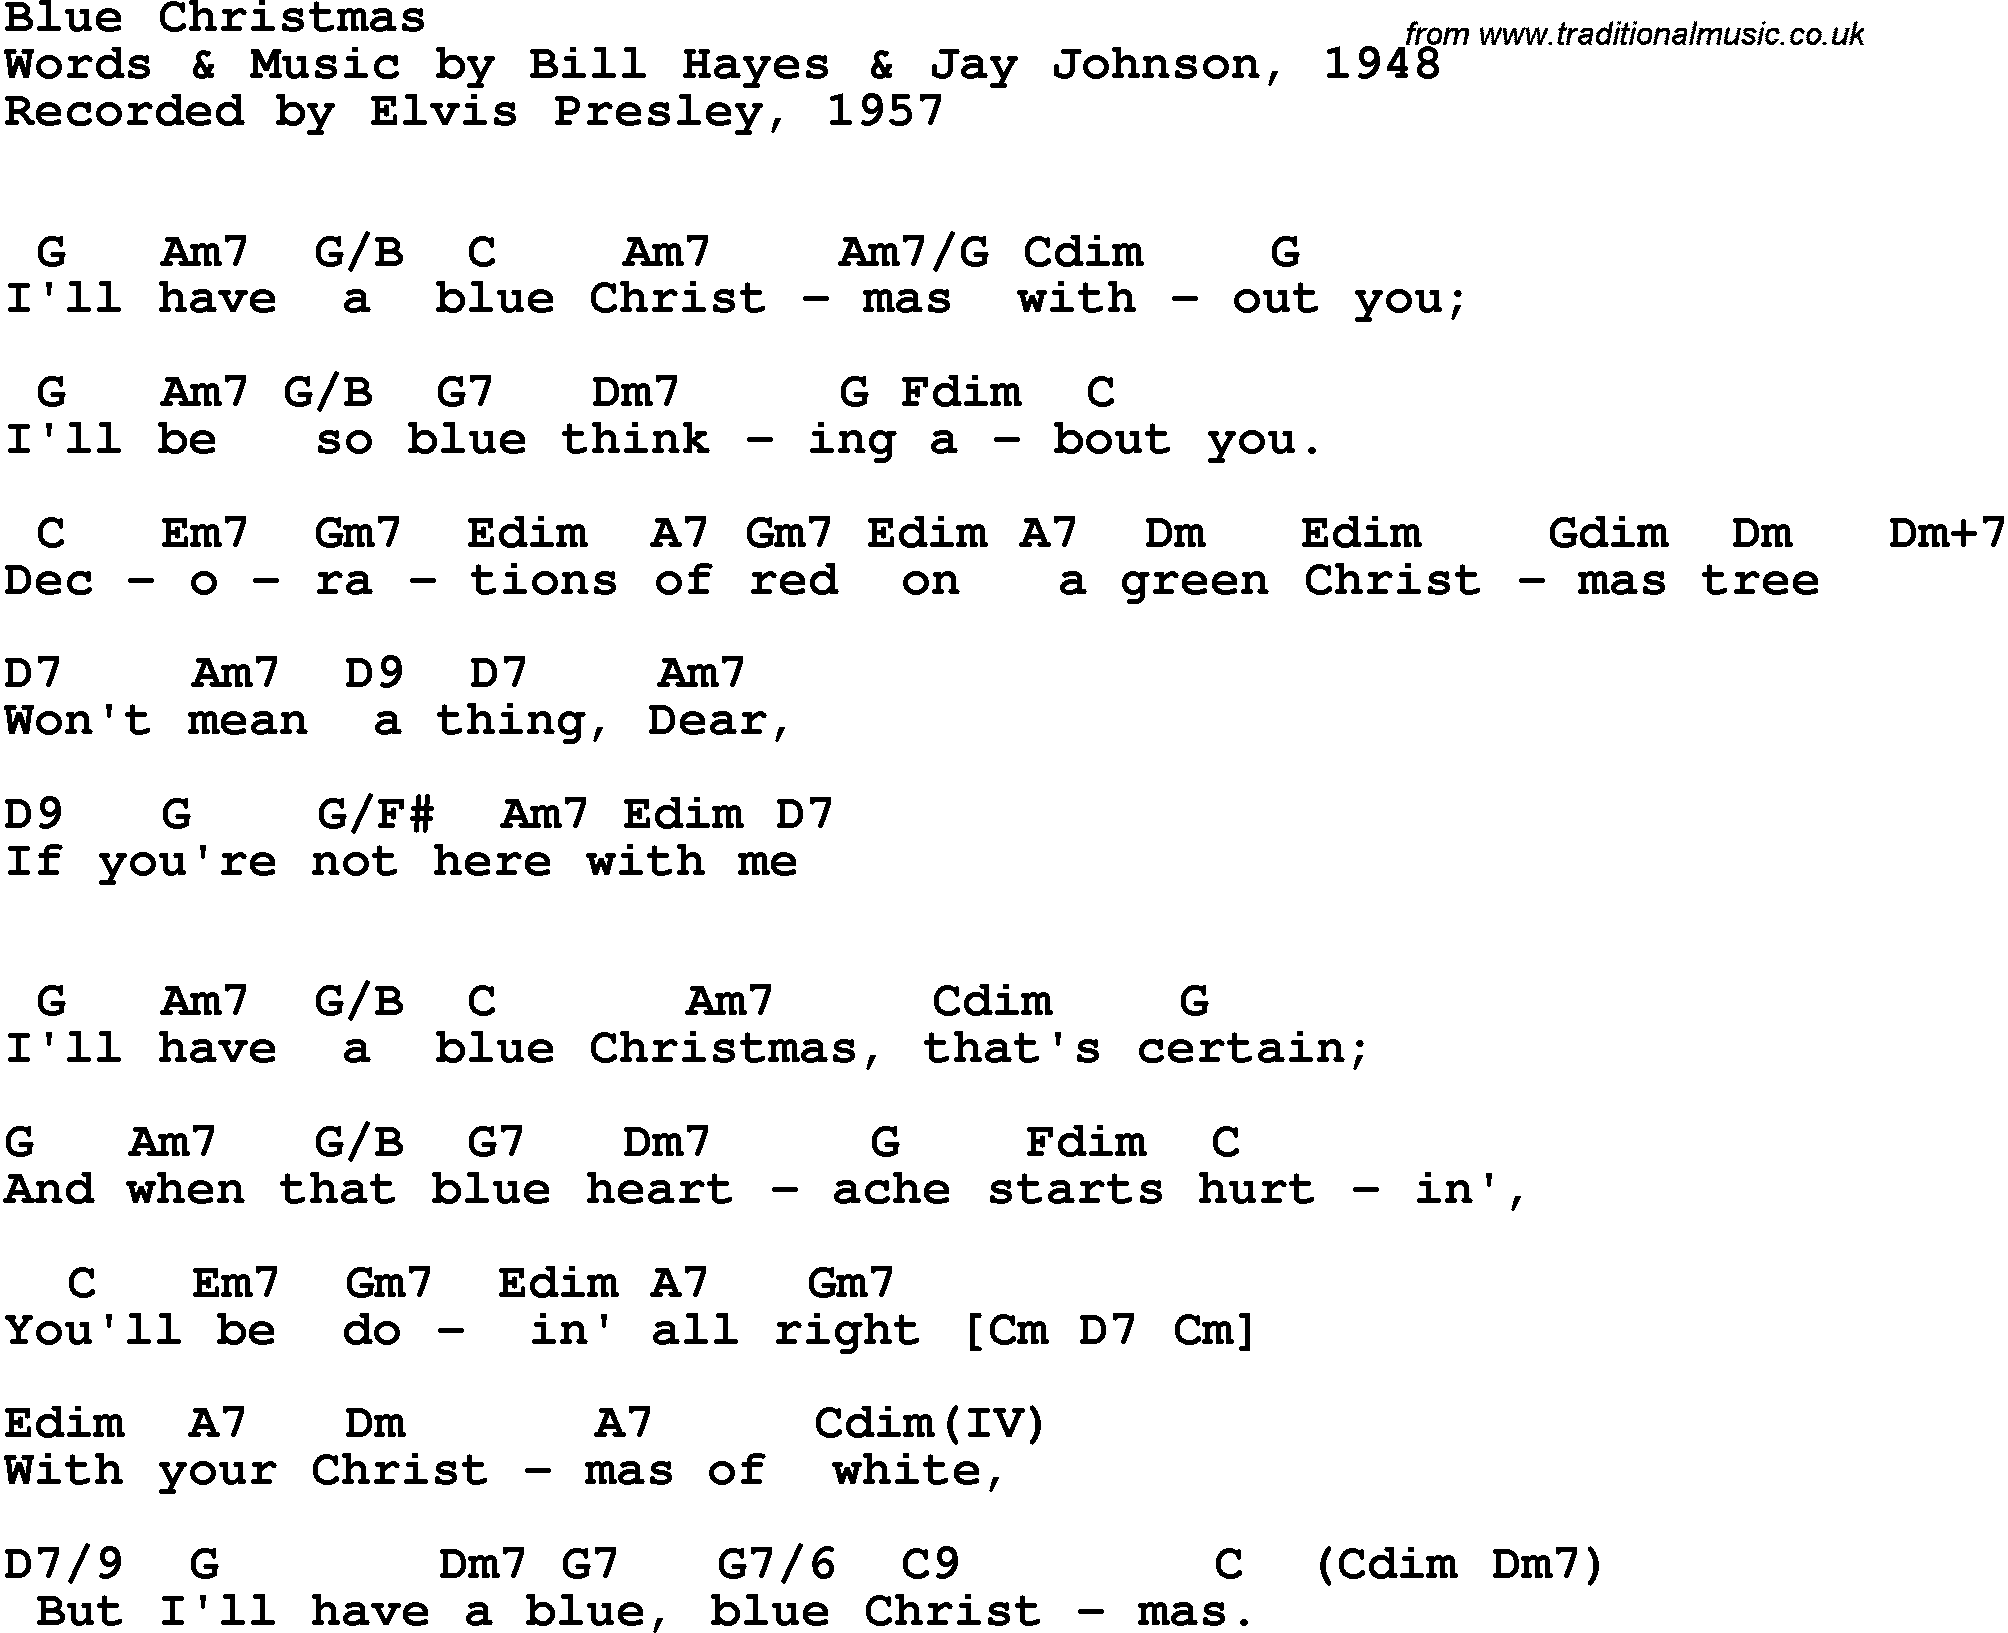 song lyrics with guitar chords for blue christmas elvis presley 1957 - Blue Christmas By Elvis Presley